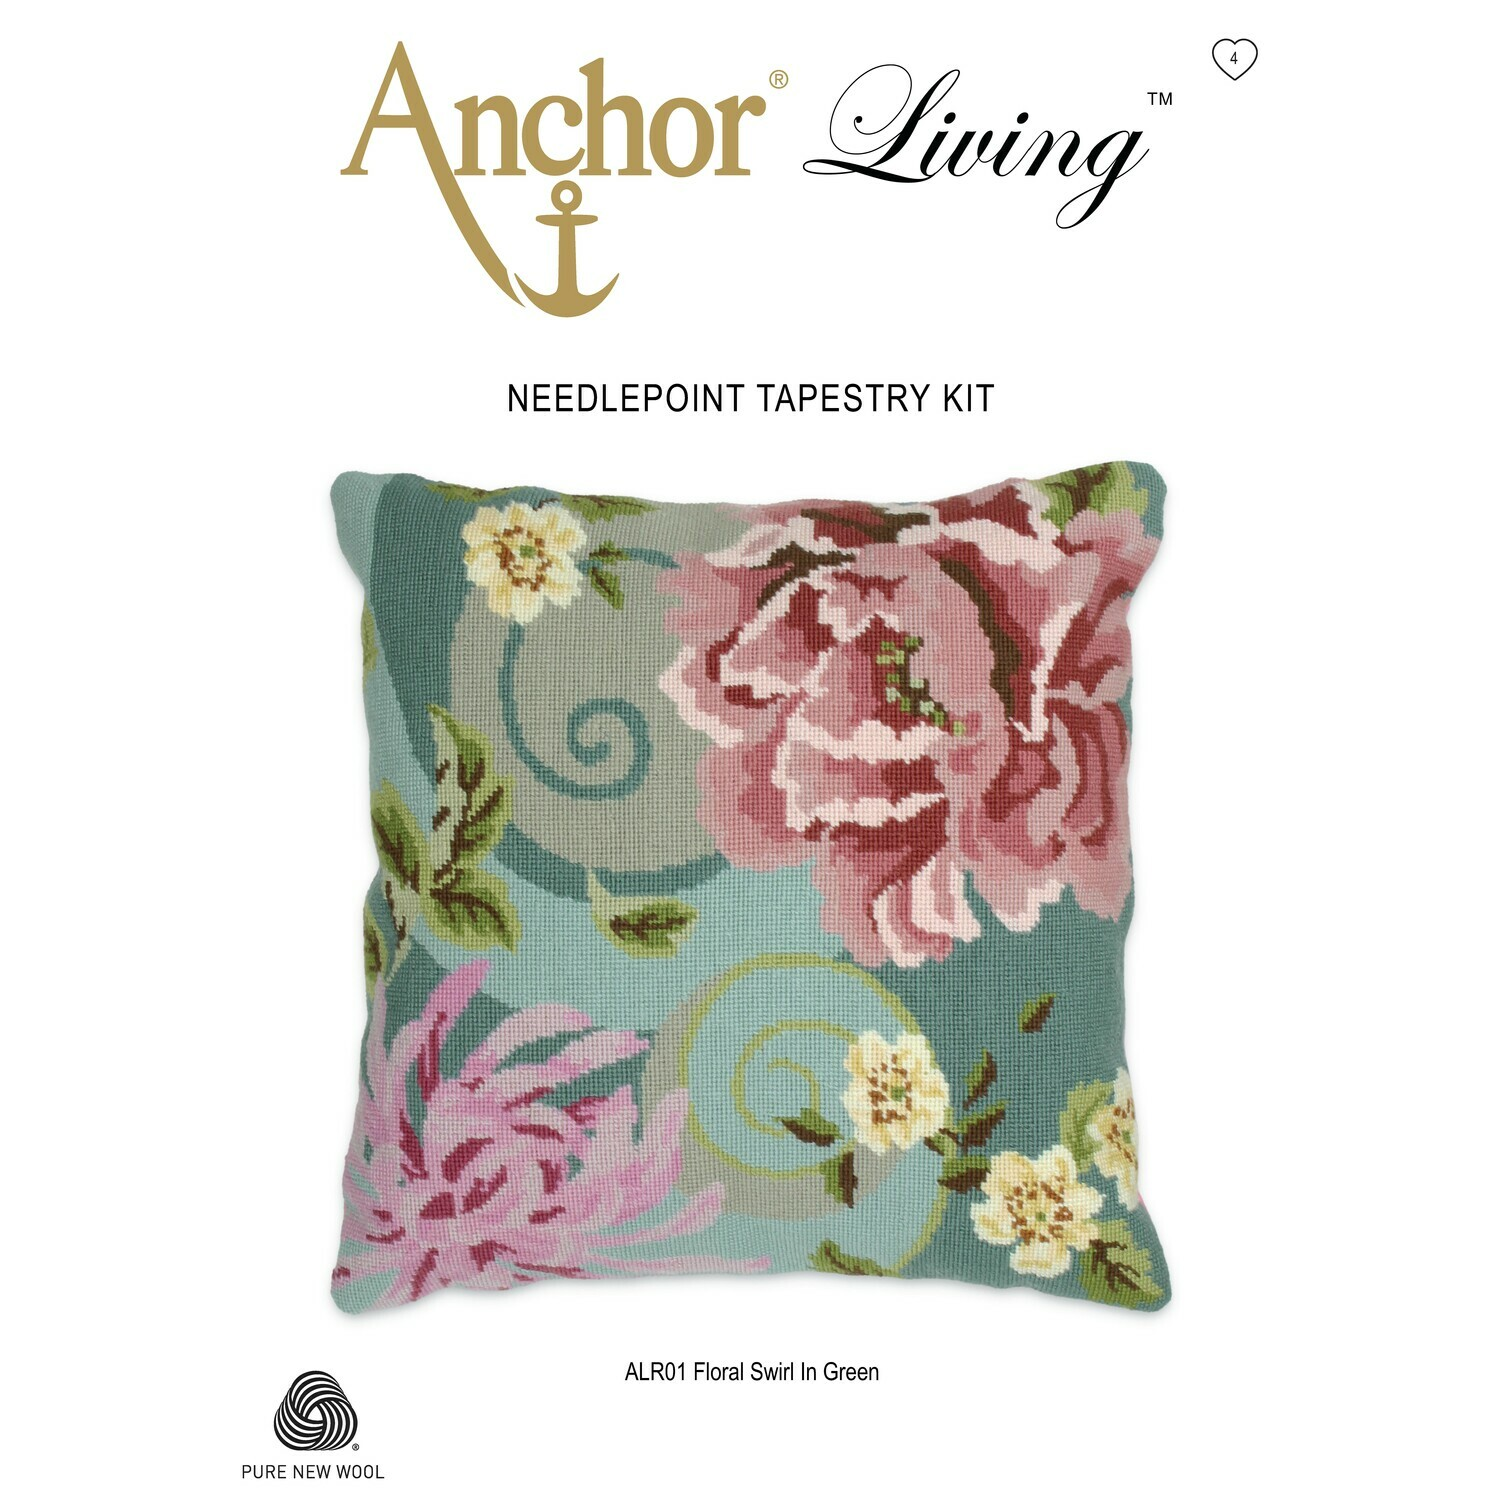 Anchor Living Tapestry Kit - Tapestry Floral Swirl in Green Cushion